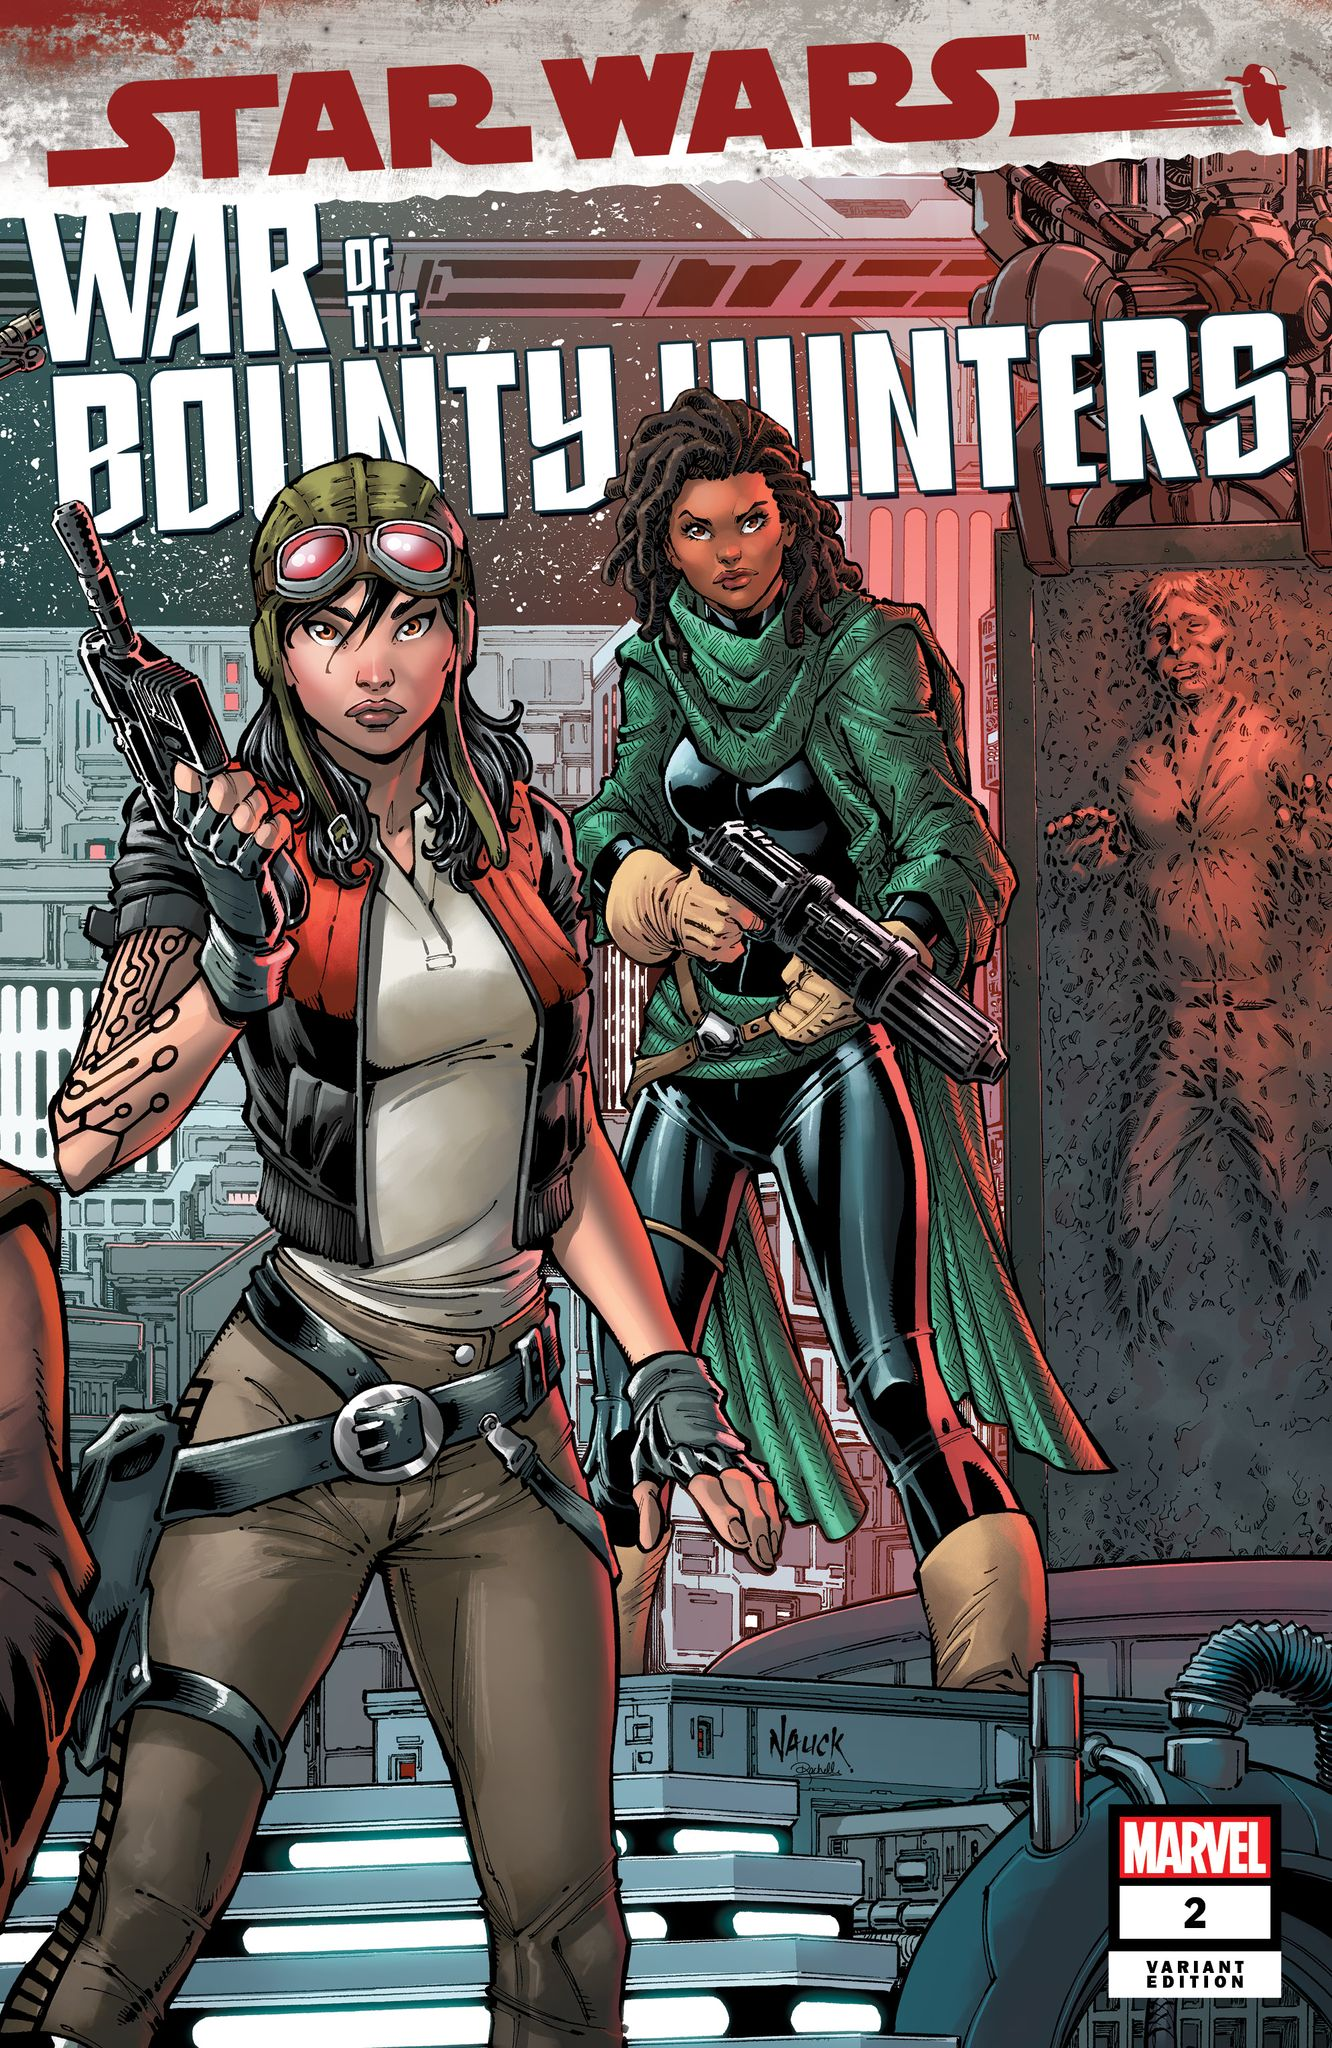 War of the Bounty Hunters #2 (Todd Nauck Variant Cover) (14.07.2021)